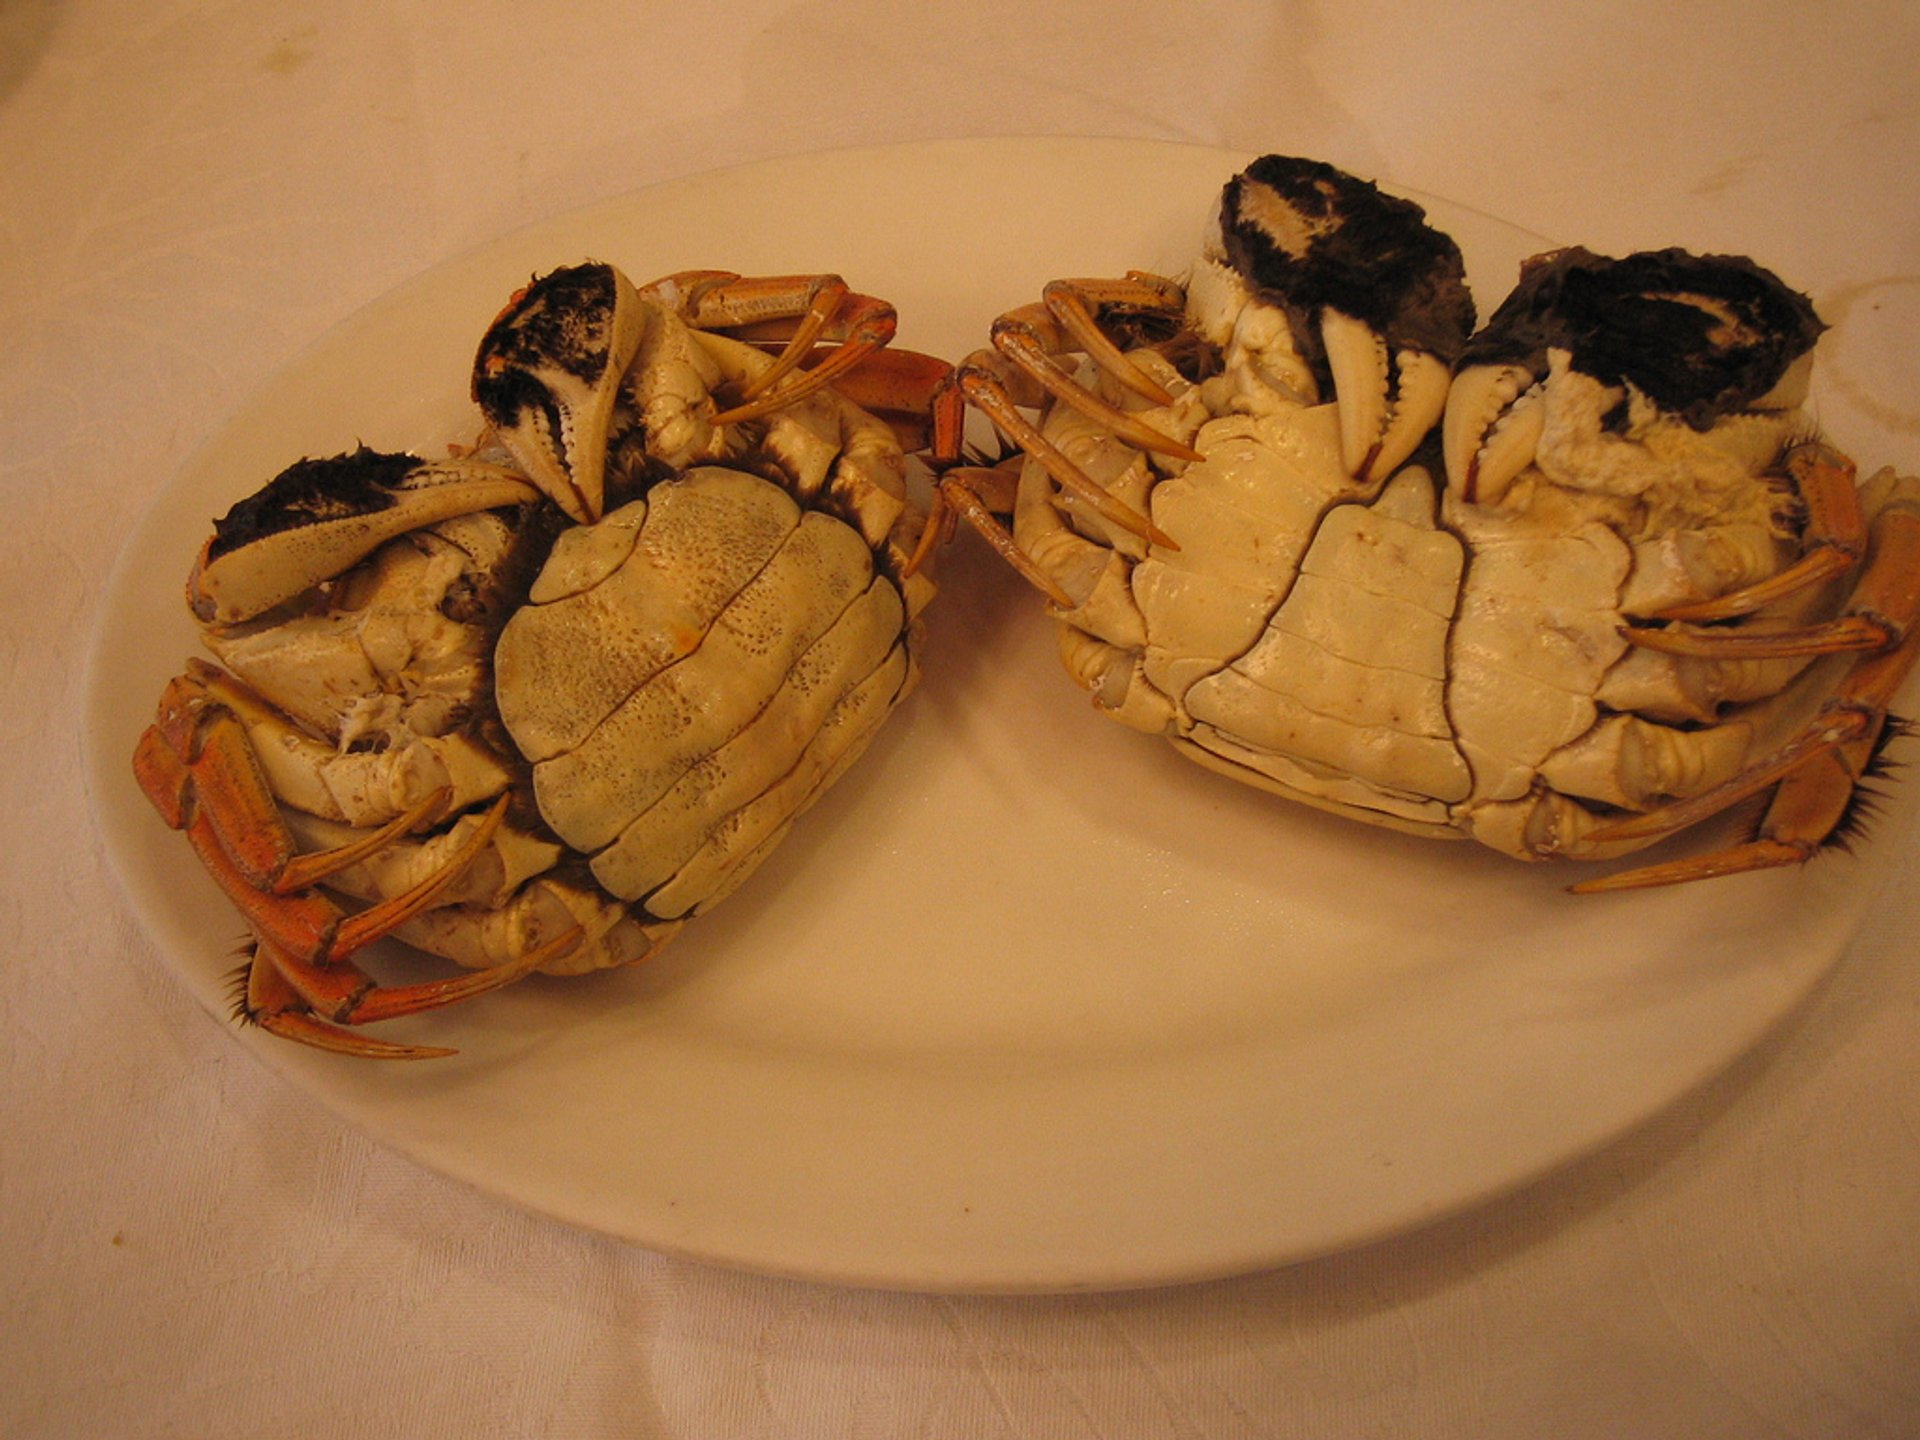 Hairy Crab Season in Shanghai - Best Season